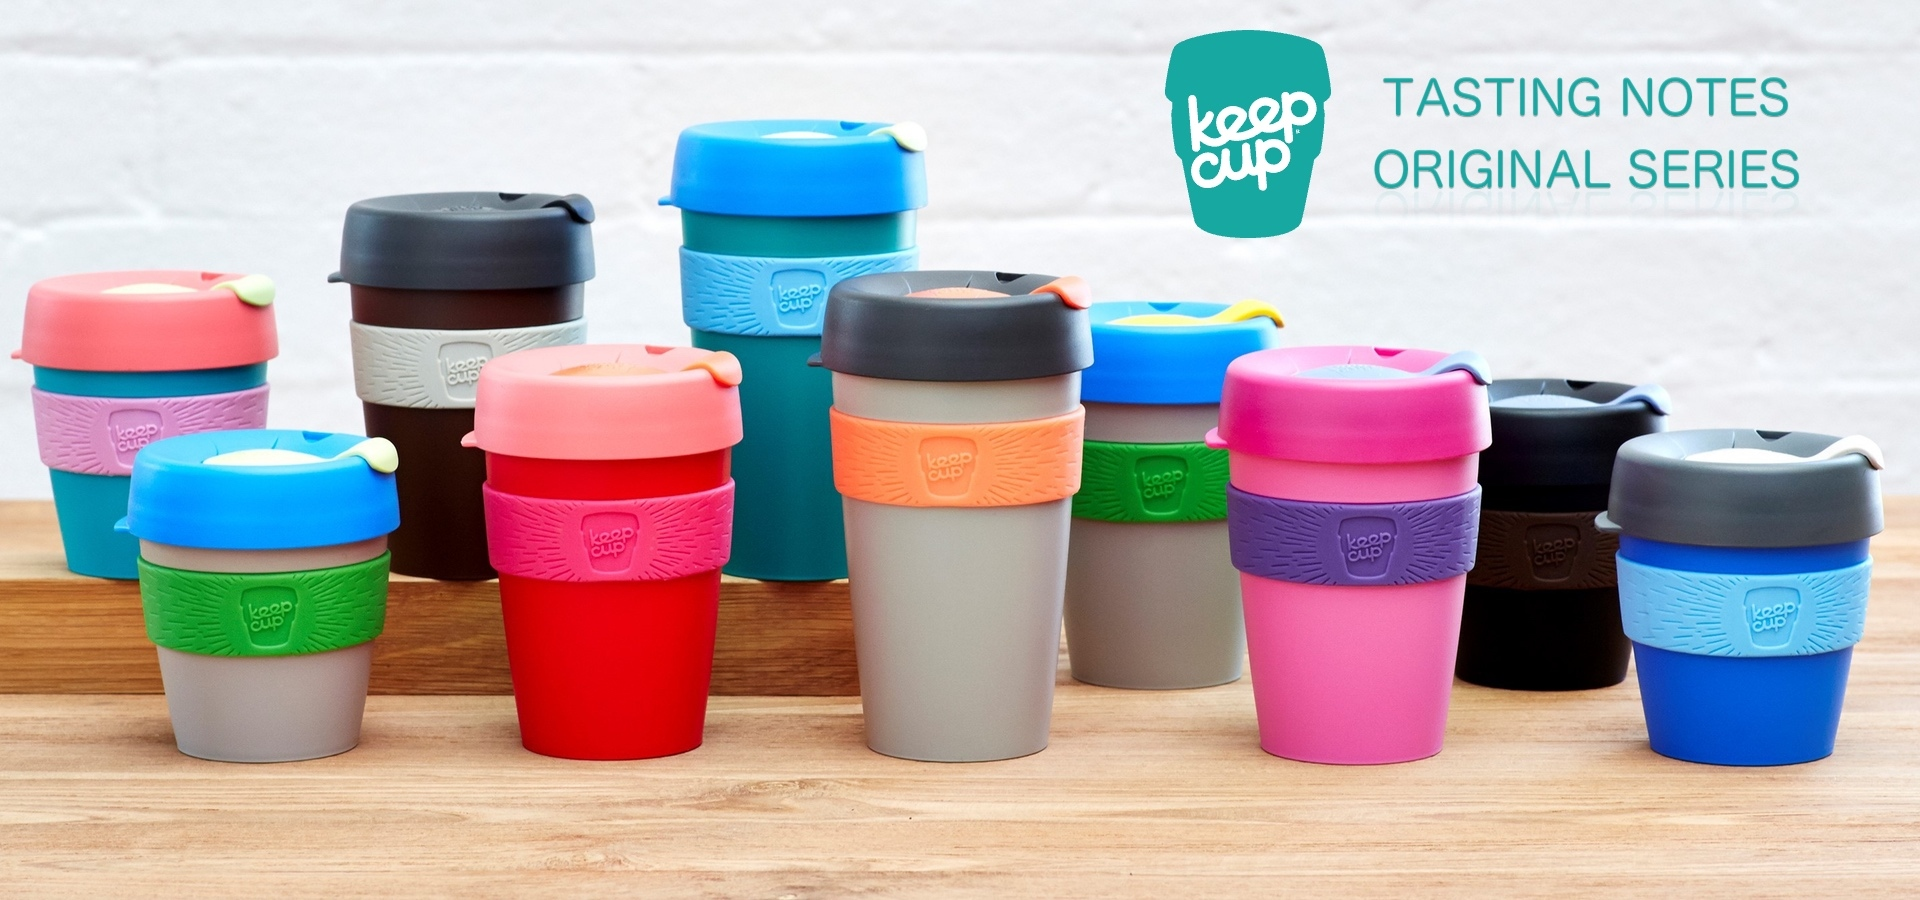 It is just the original KeepCup